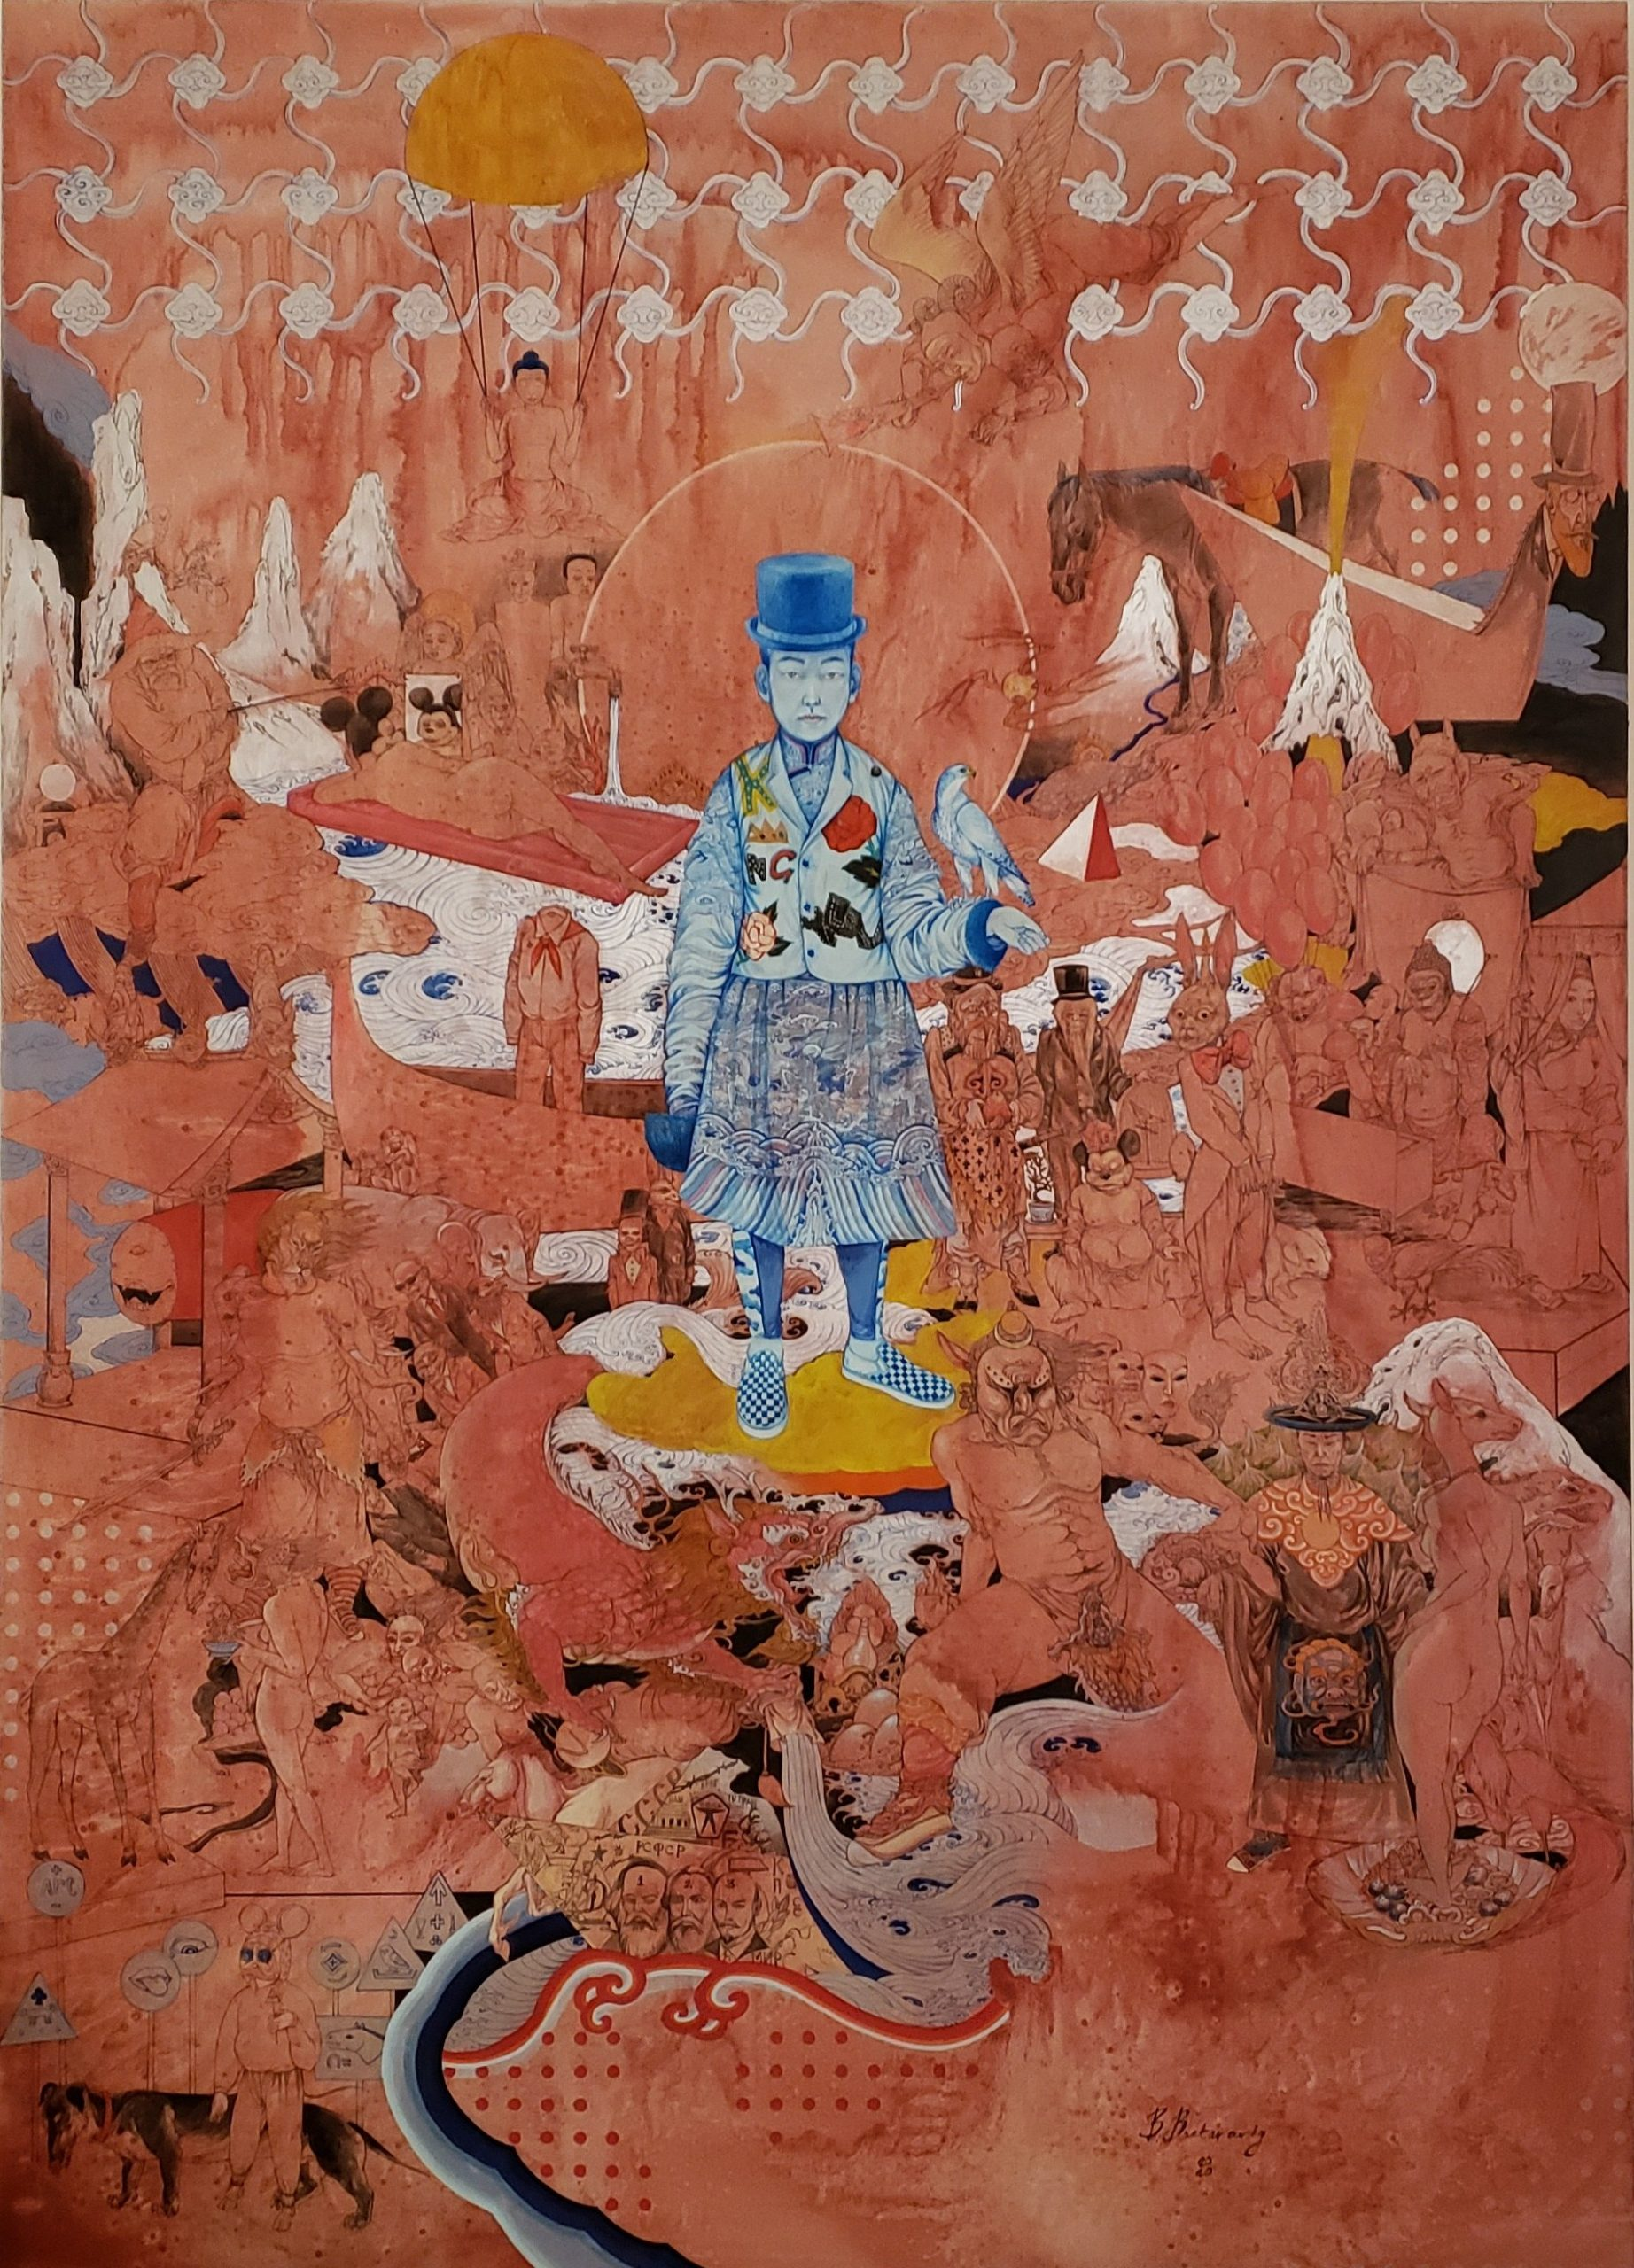 Baatarzorig Batjargal Peter Pan 2020 Acryl on Canvas 140x100cm